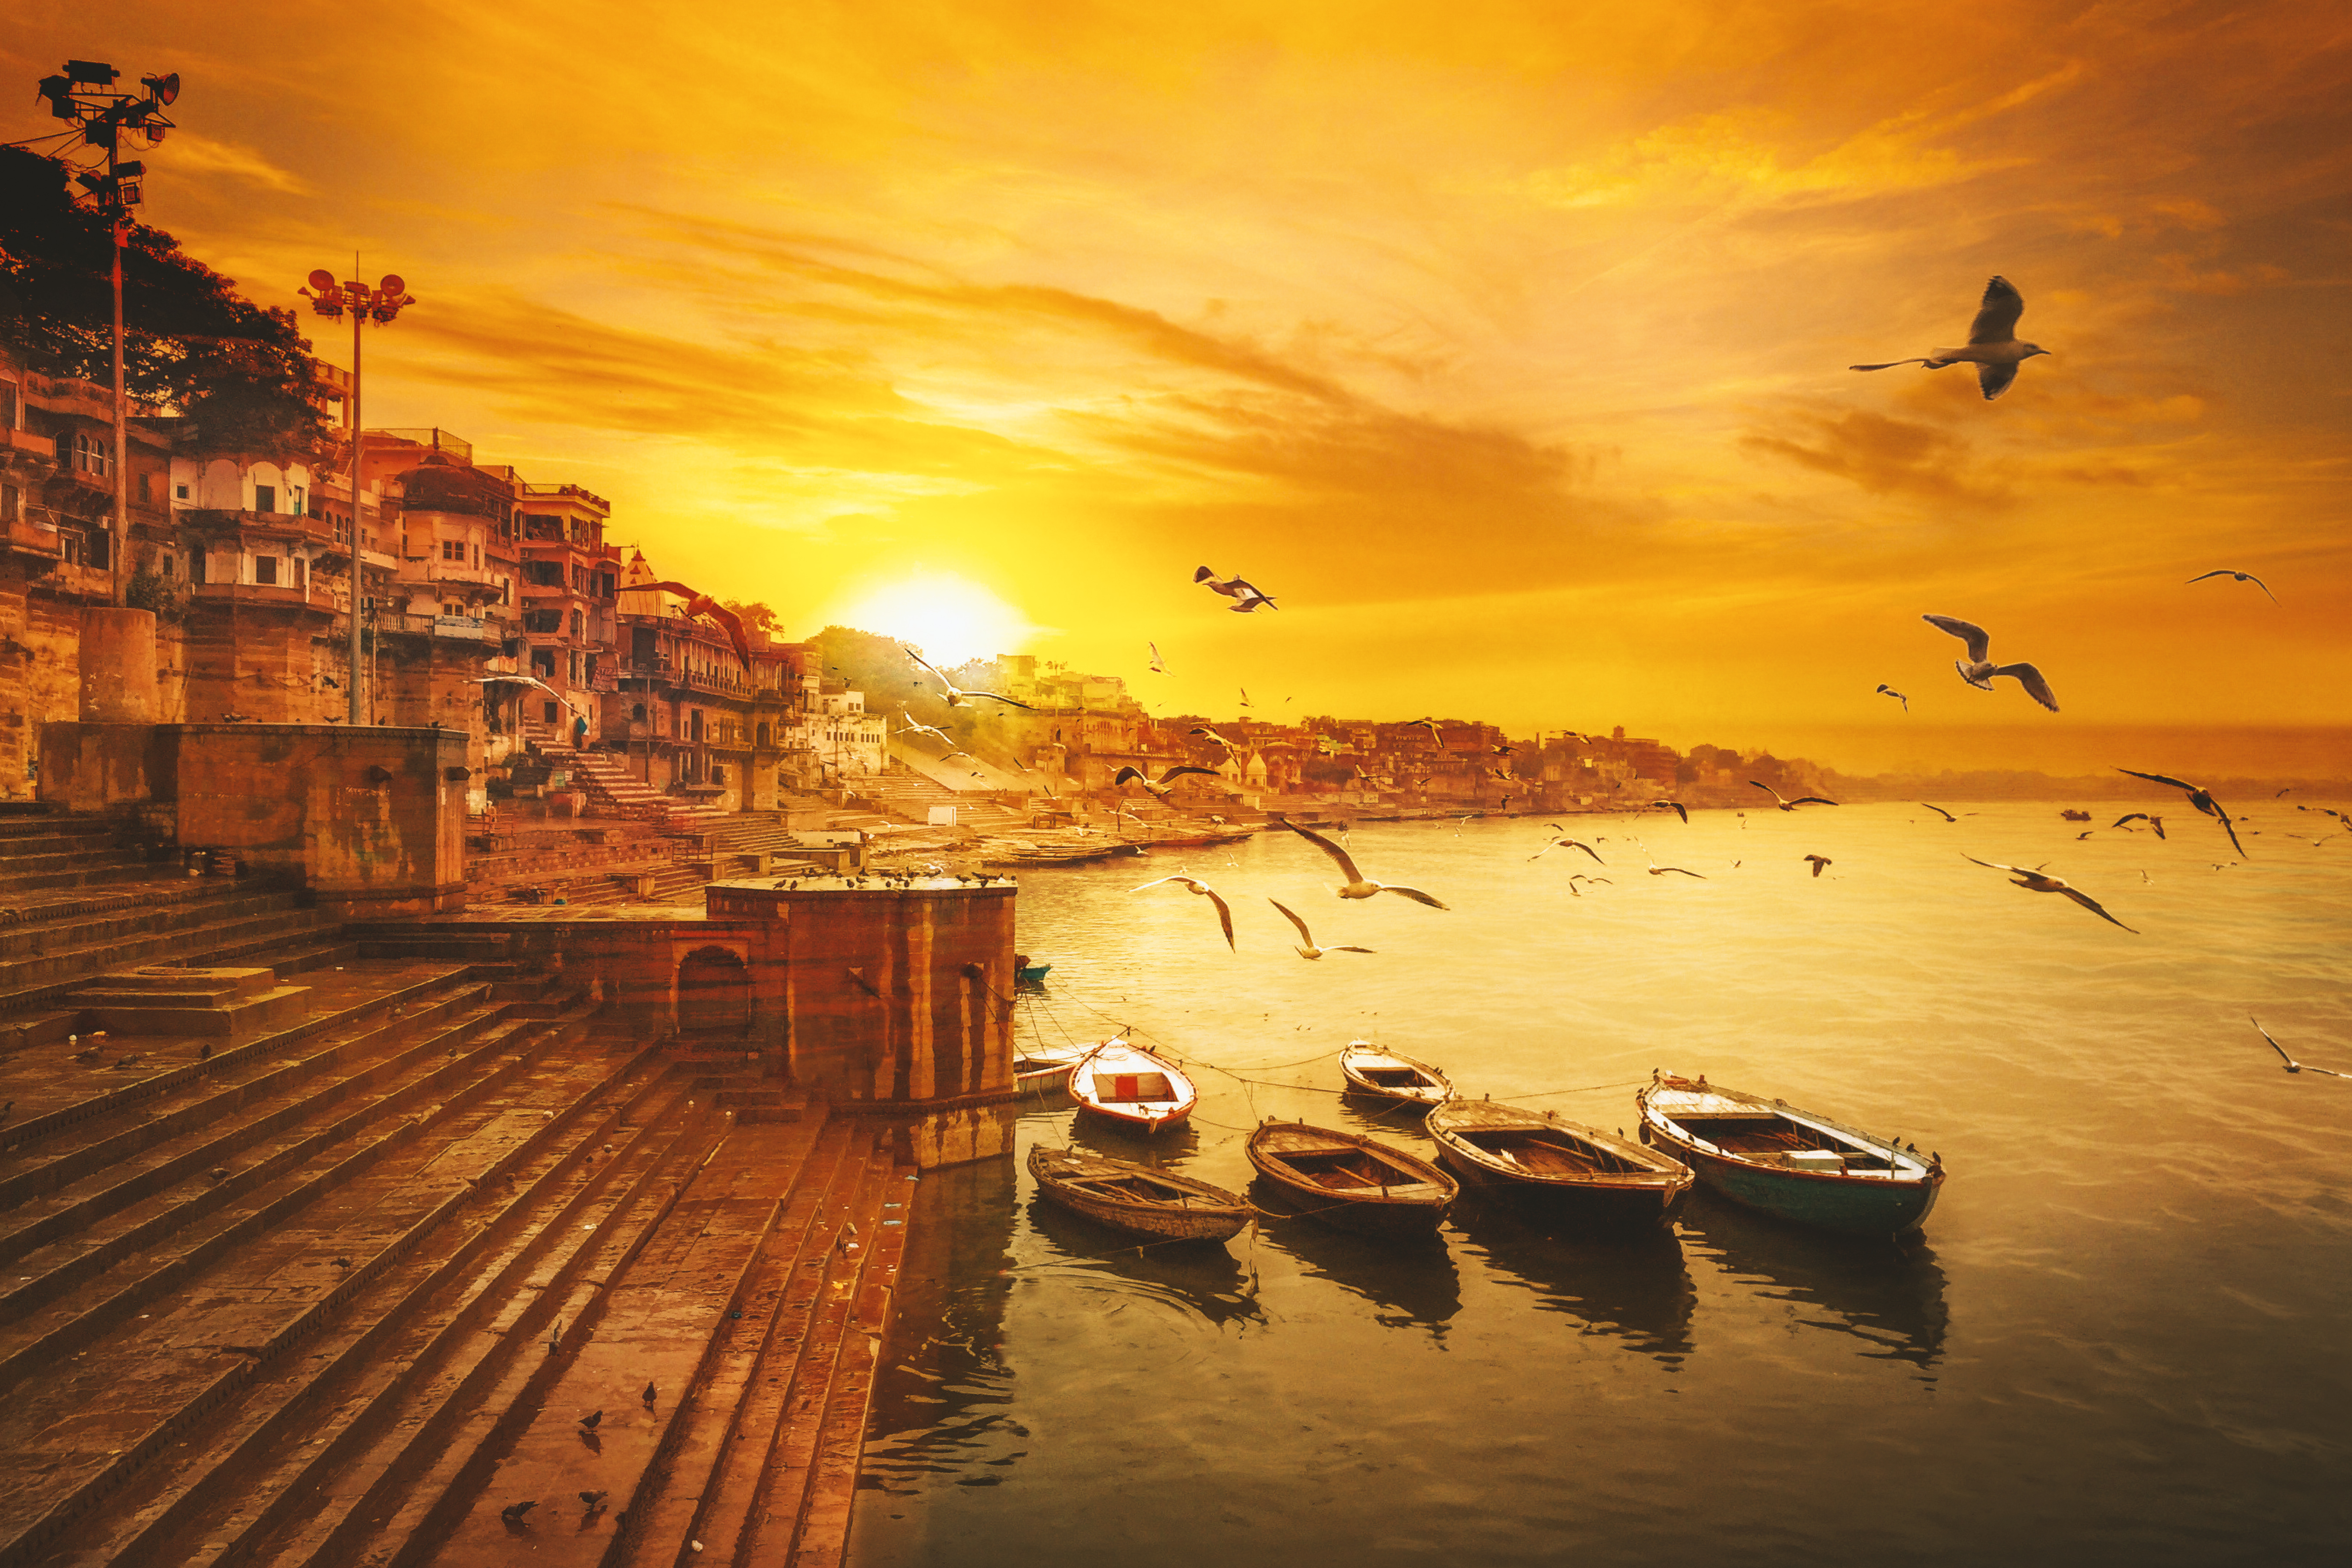 Varanasi Ganges river ghat with ancient city architecture as viewed river at sunset.- Image